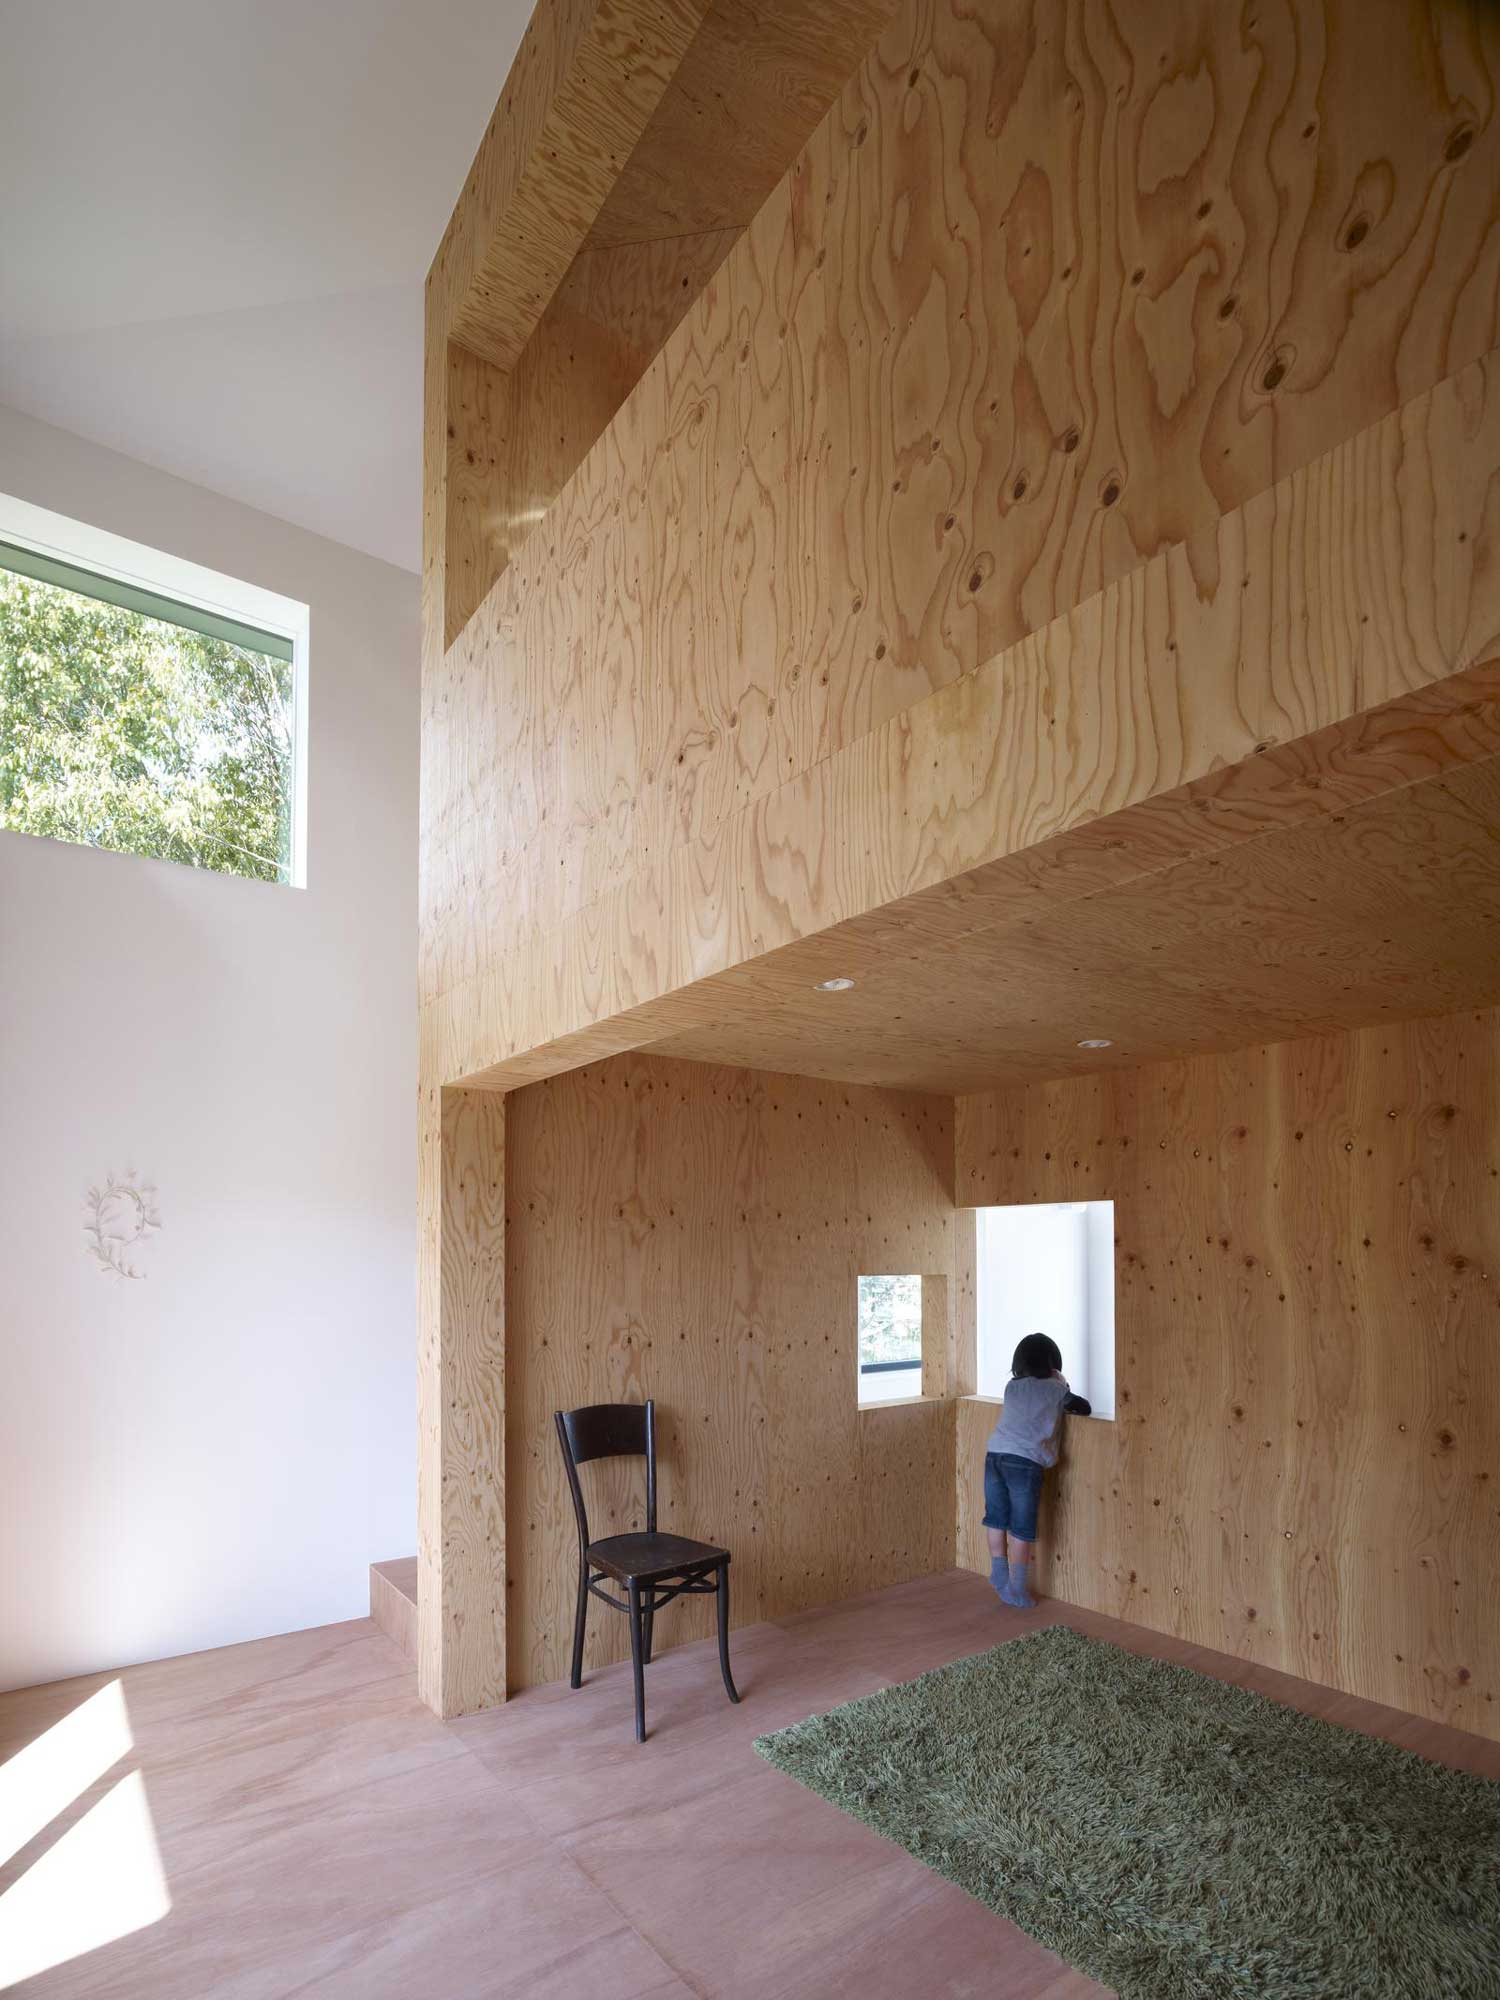 Belly House by Tomohiro Hata | Yellowtrace